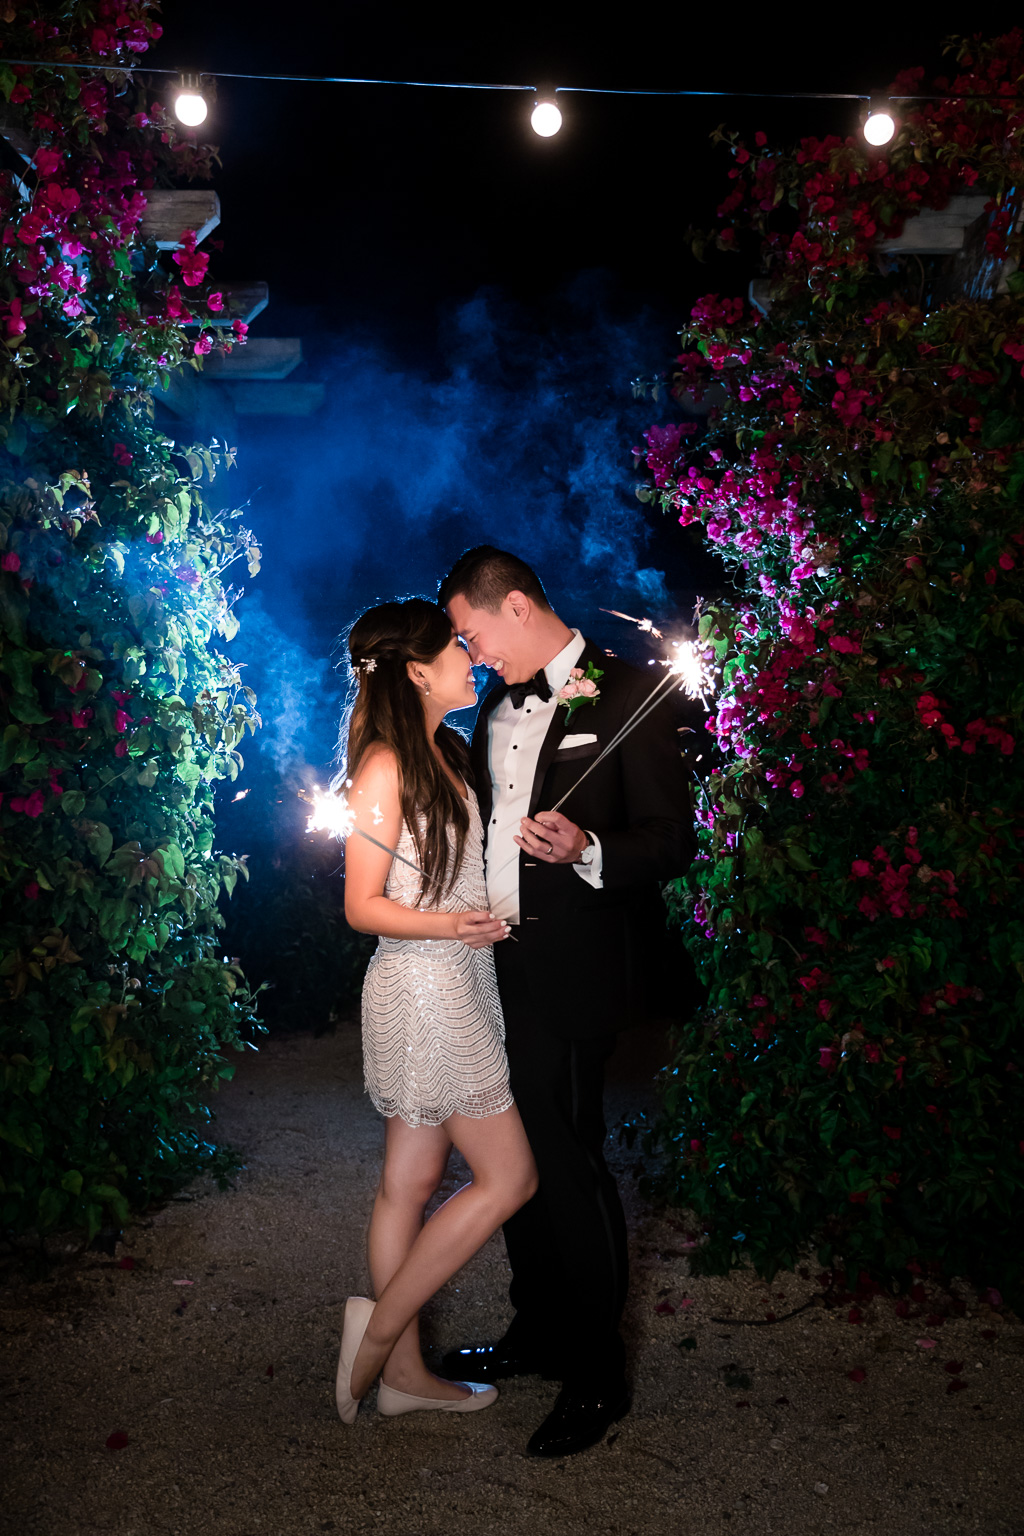 newlywed night photo with wedding sparklers